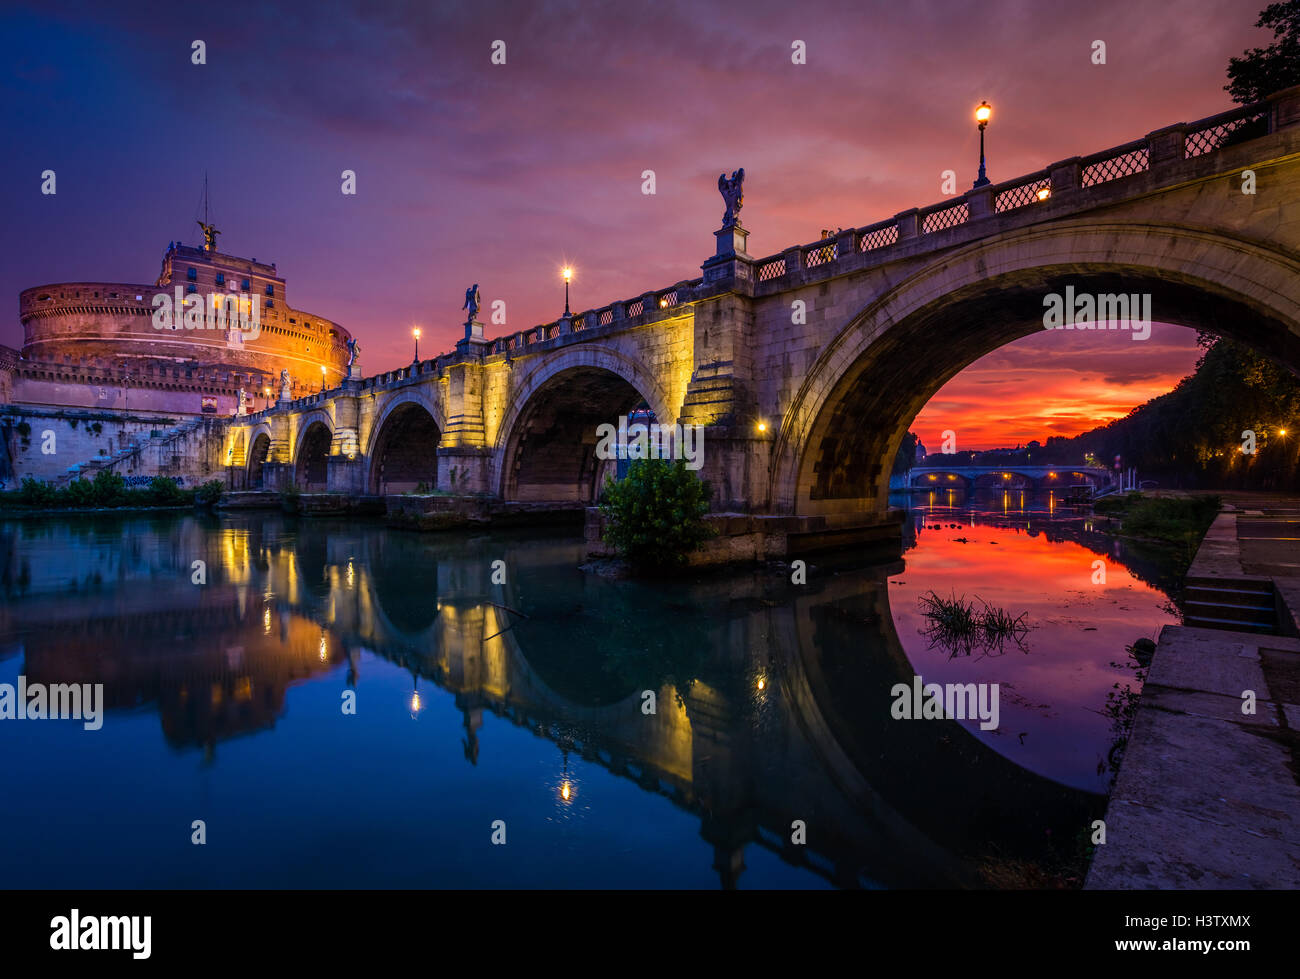 Castel Sant'Angelo, is a towering cylindrical building in Rome, Italy - Stock Image